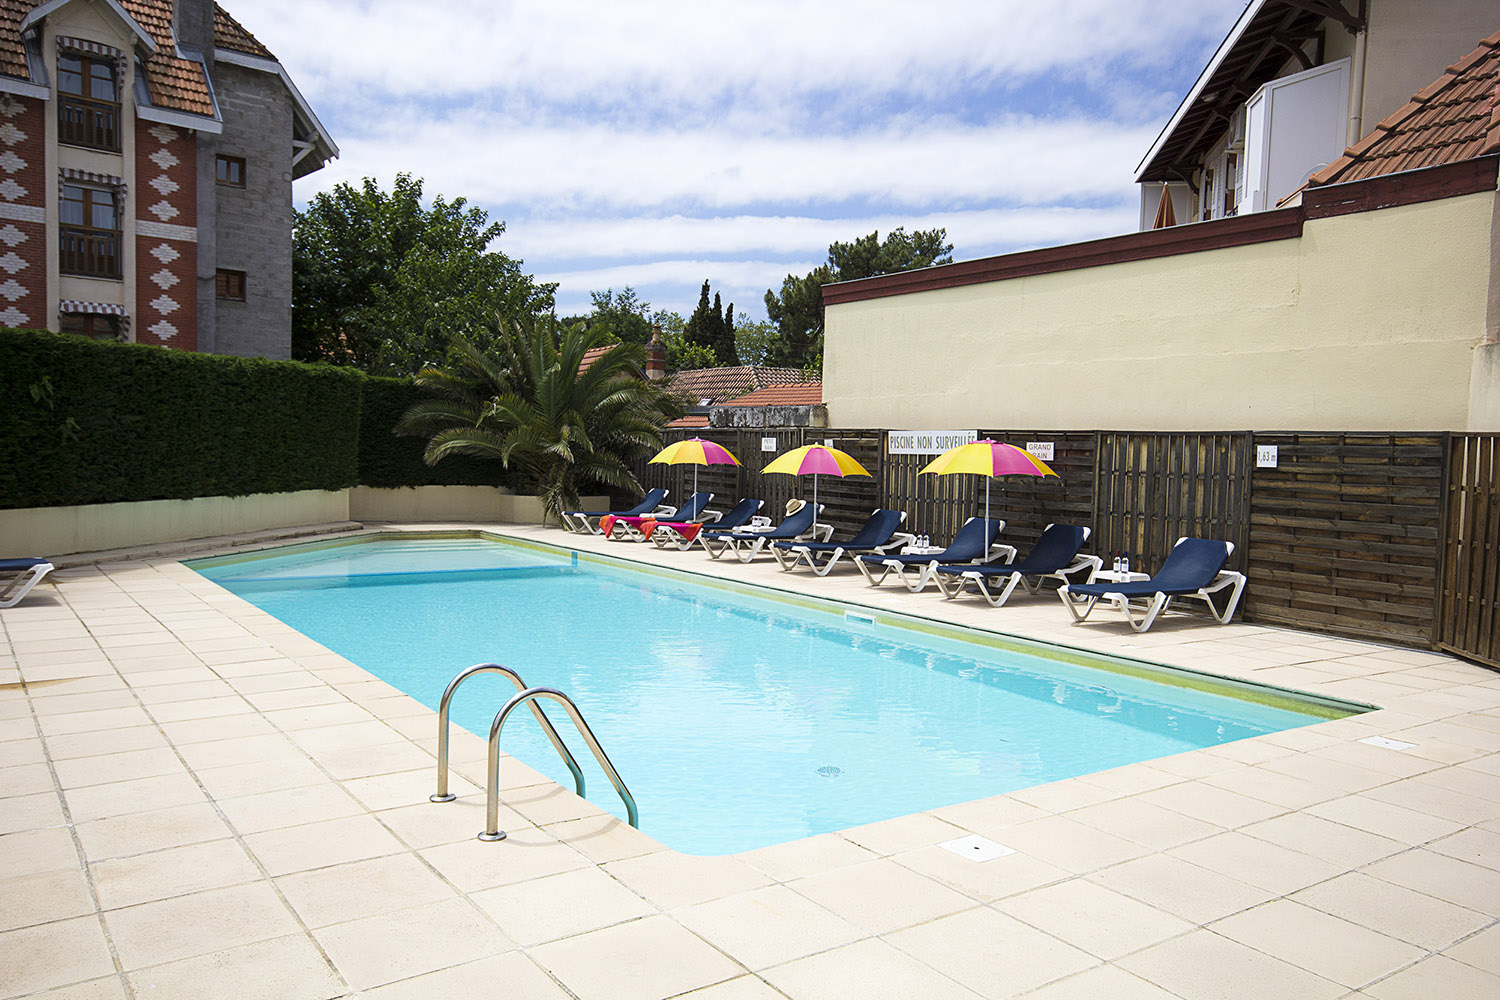 H tel arcachon le dauphin i site officiel for Piscine 3 dauphins